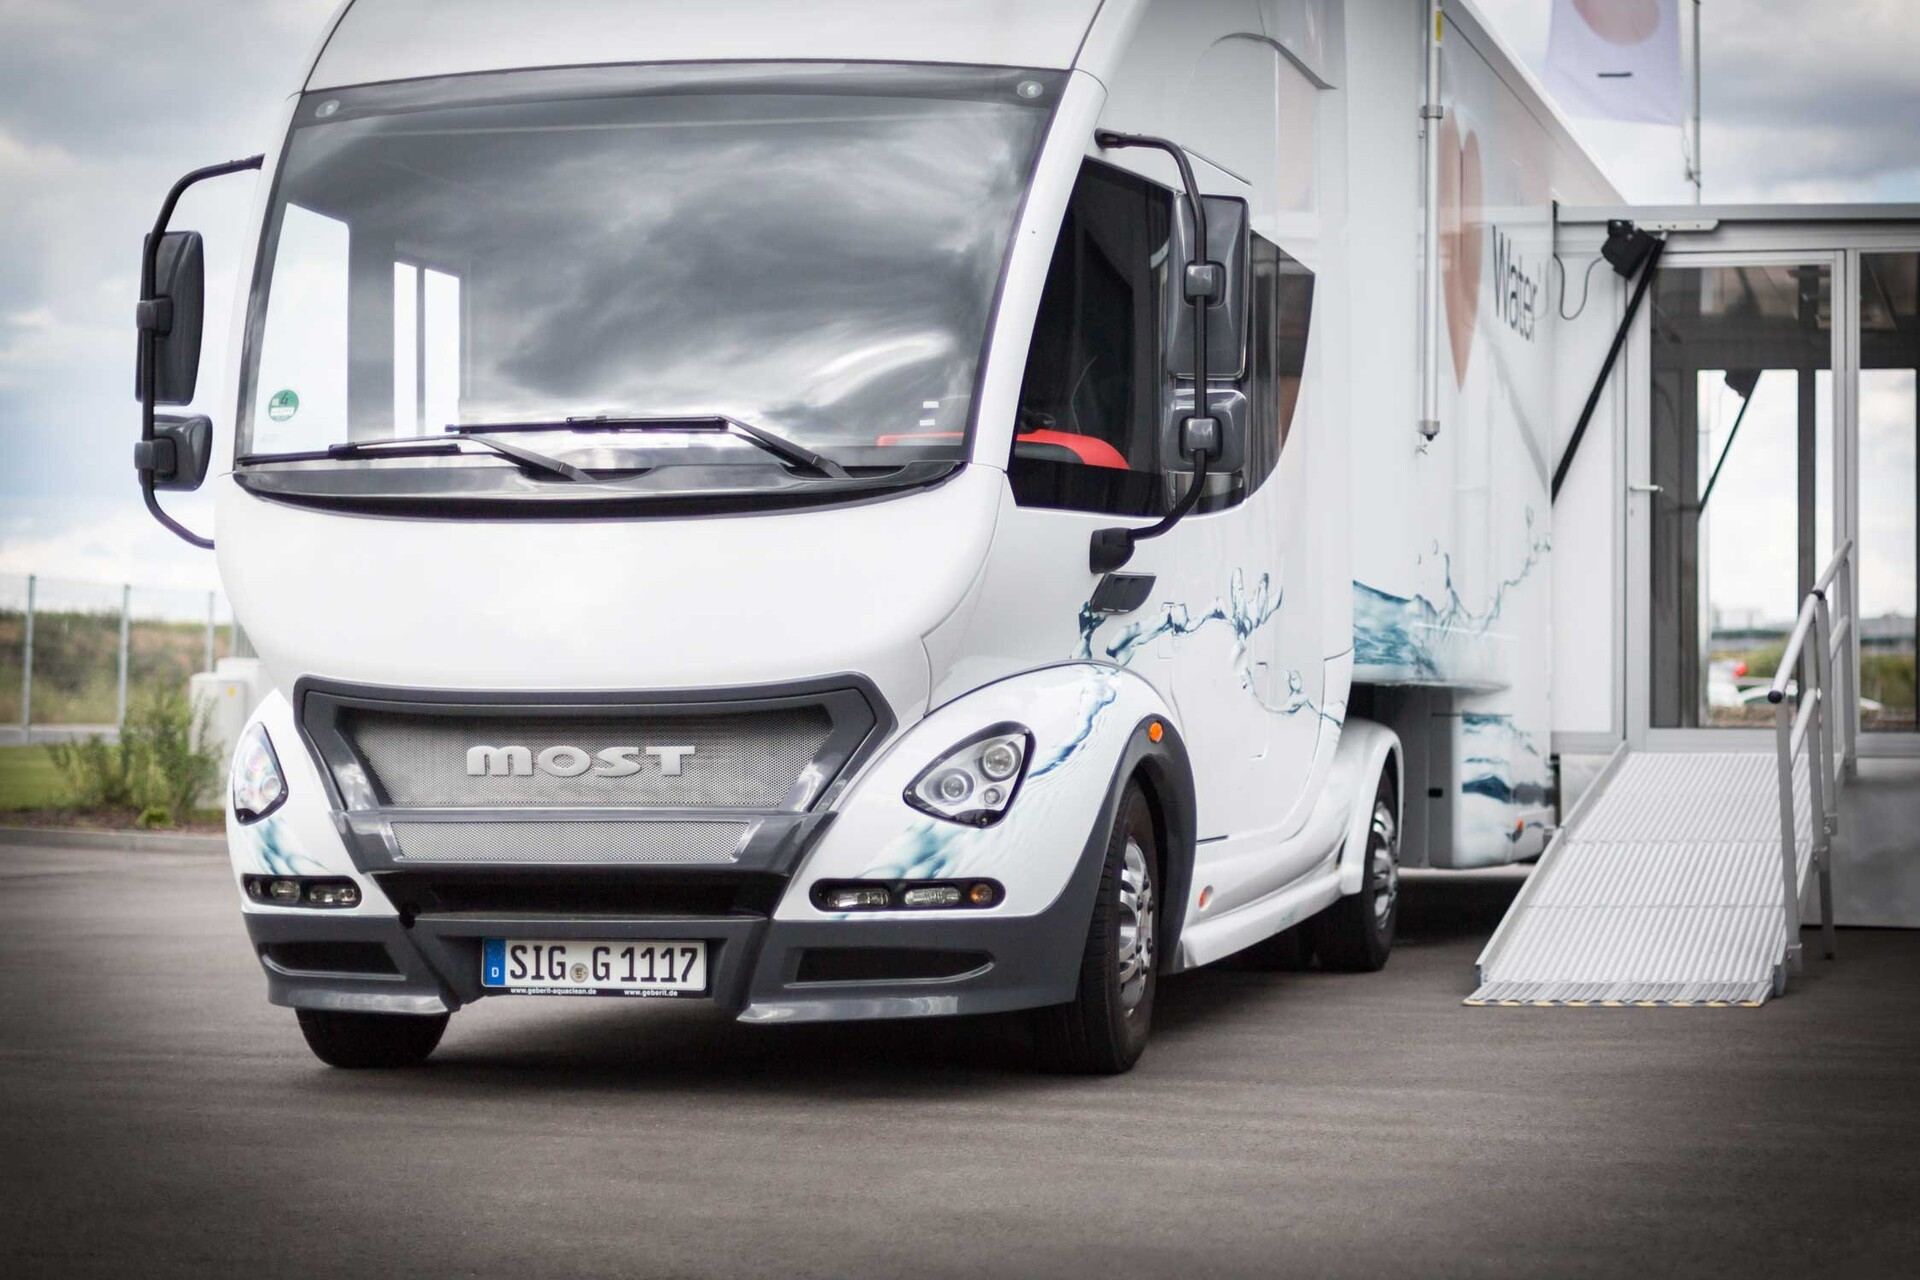 geberit-aquaclean-Infomobil-showtruck-1.jpg